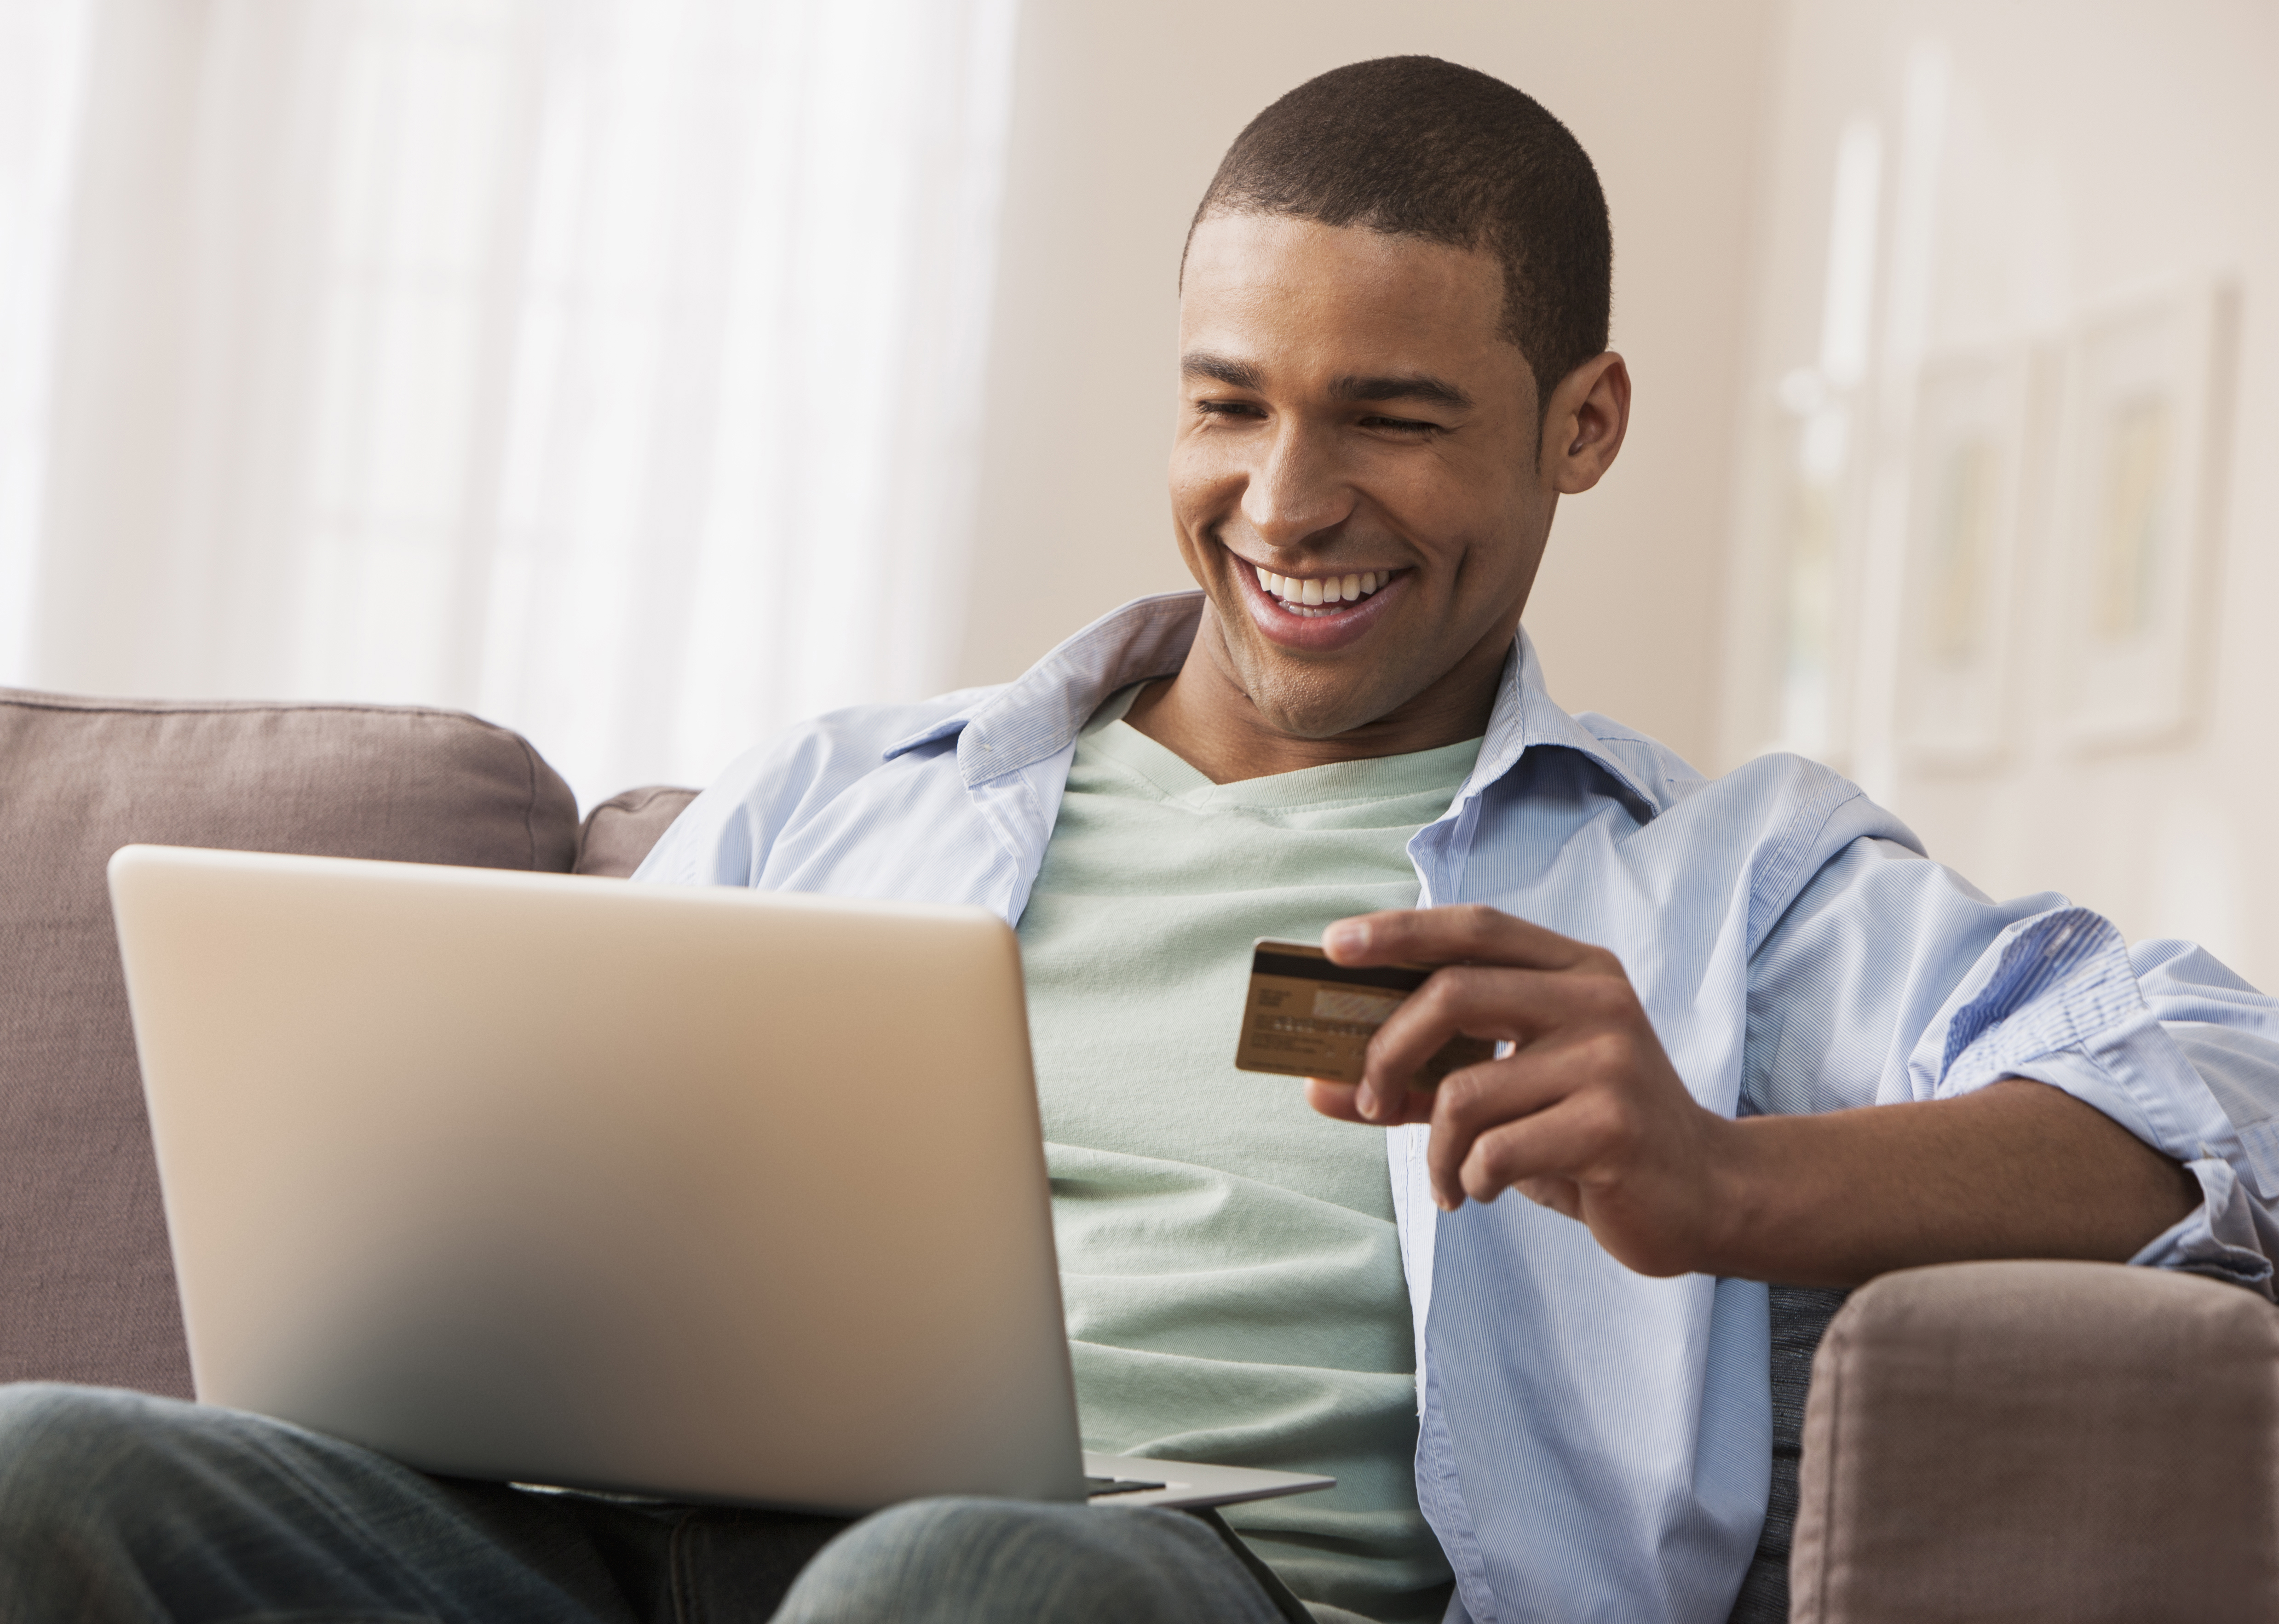 iStock-155773494-man laptop credit card on couch